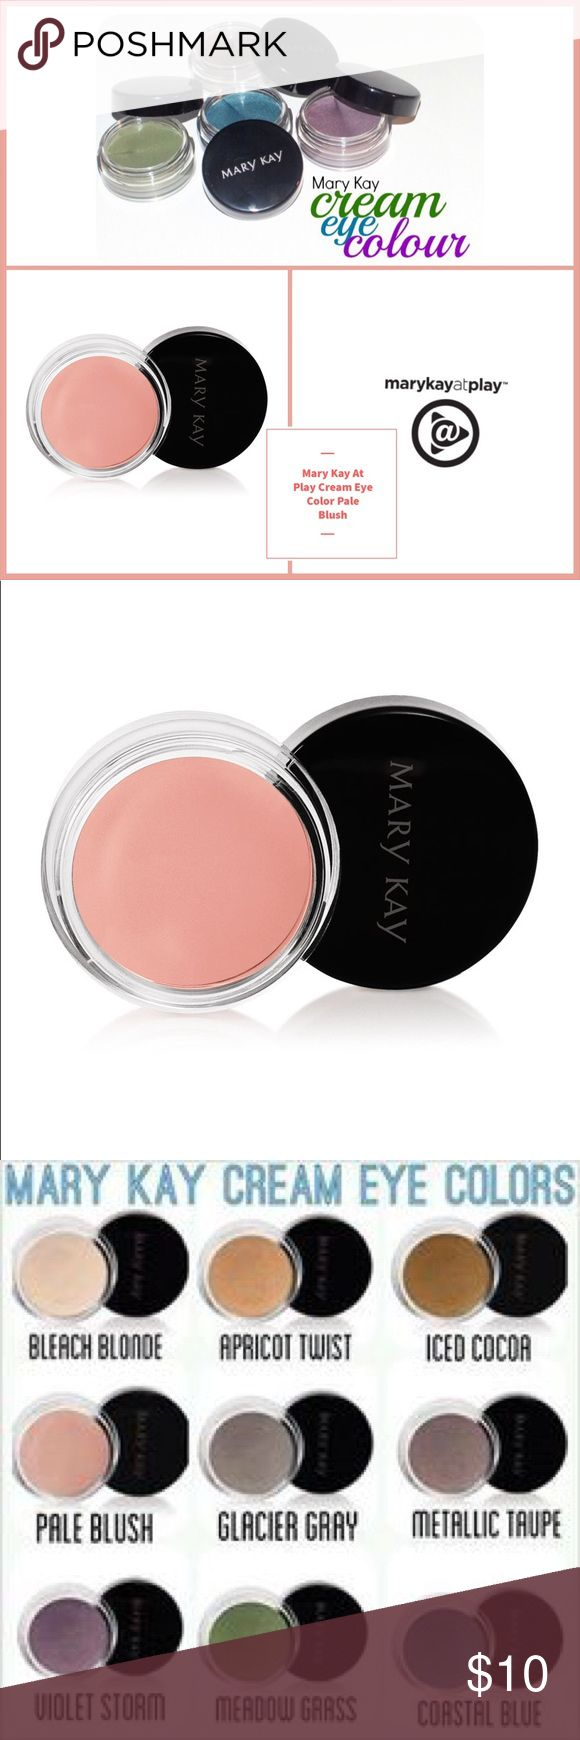 🆕 Mary Kay Cream Eye Color Pale Blush 🆕 Mary Kay Cream Eye Color Pale Blush ▪️This soft, creamy, long-wearing formula glides on easily, lasts for 10 hours and can be applied in multiple layers to deliver more noticeable color while retaining a lightweight feel. ▪️Can be used alone or as a primer under mineral eye color. ▪️Dries quickly & does not transfer. ▪️Oil- and fragrance-free. ▪️Clinically tested for skin irritancy and allergy, suitable for sensitive skin and eyes. ▪️Note: In…